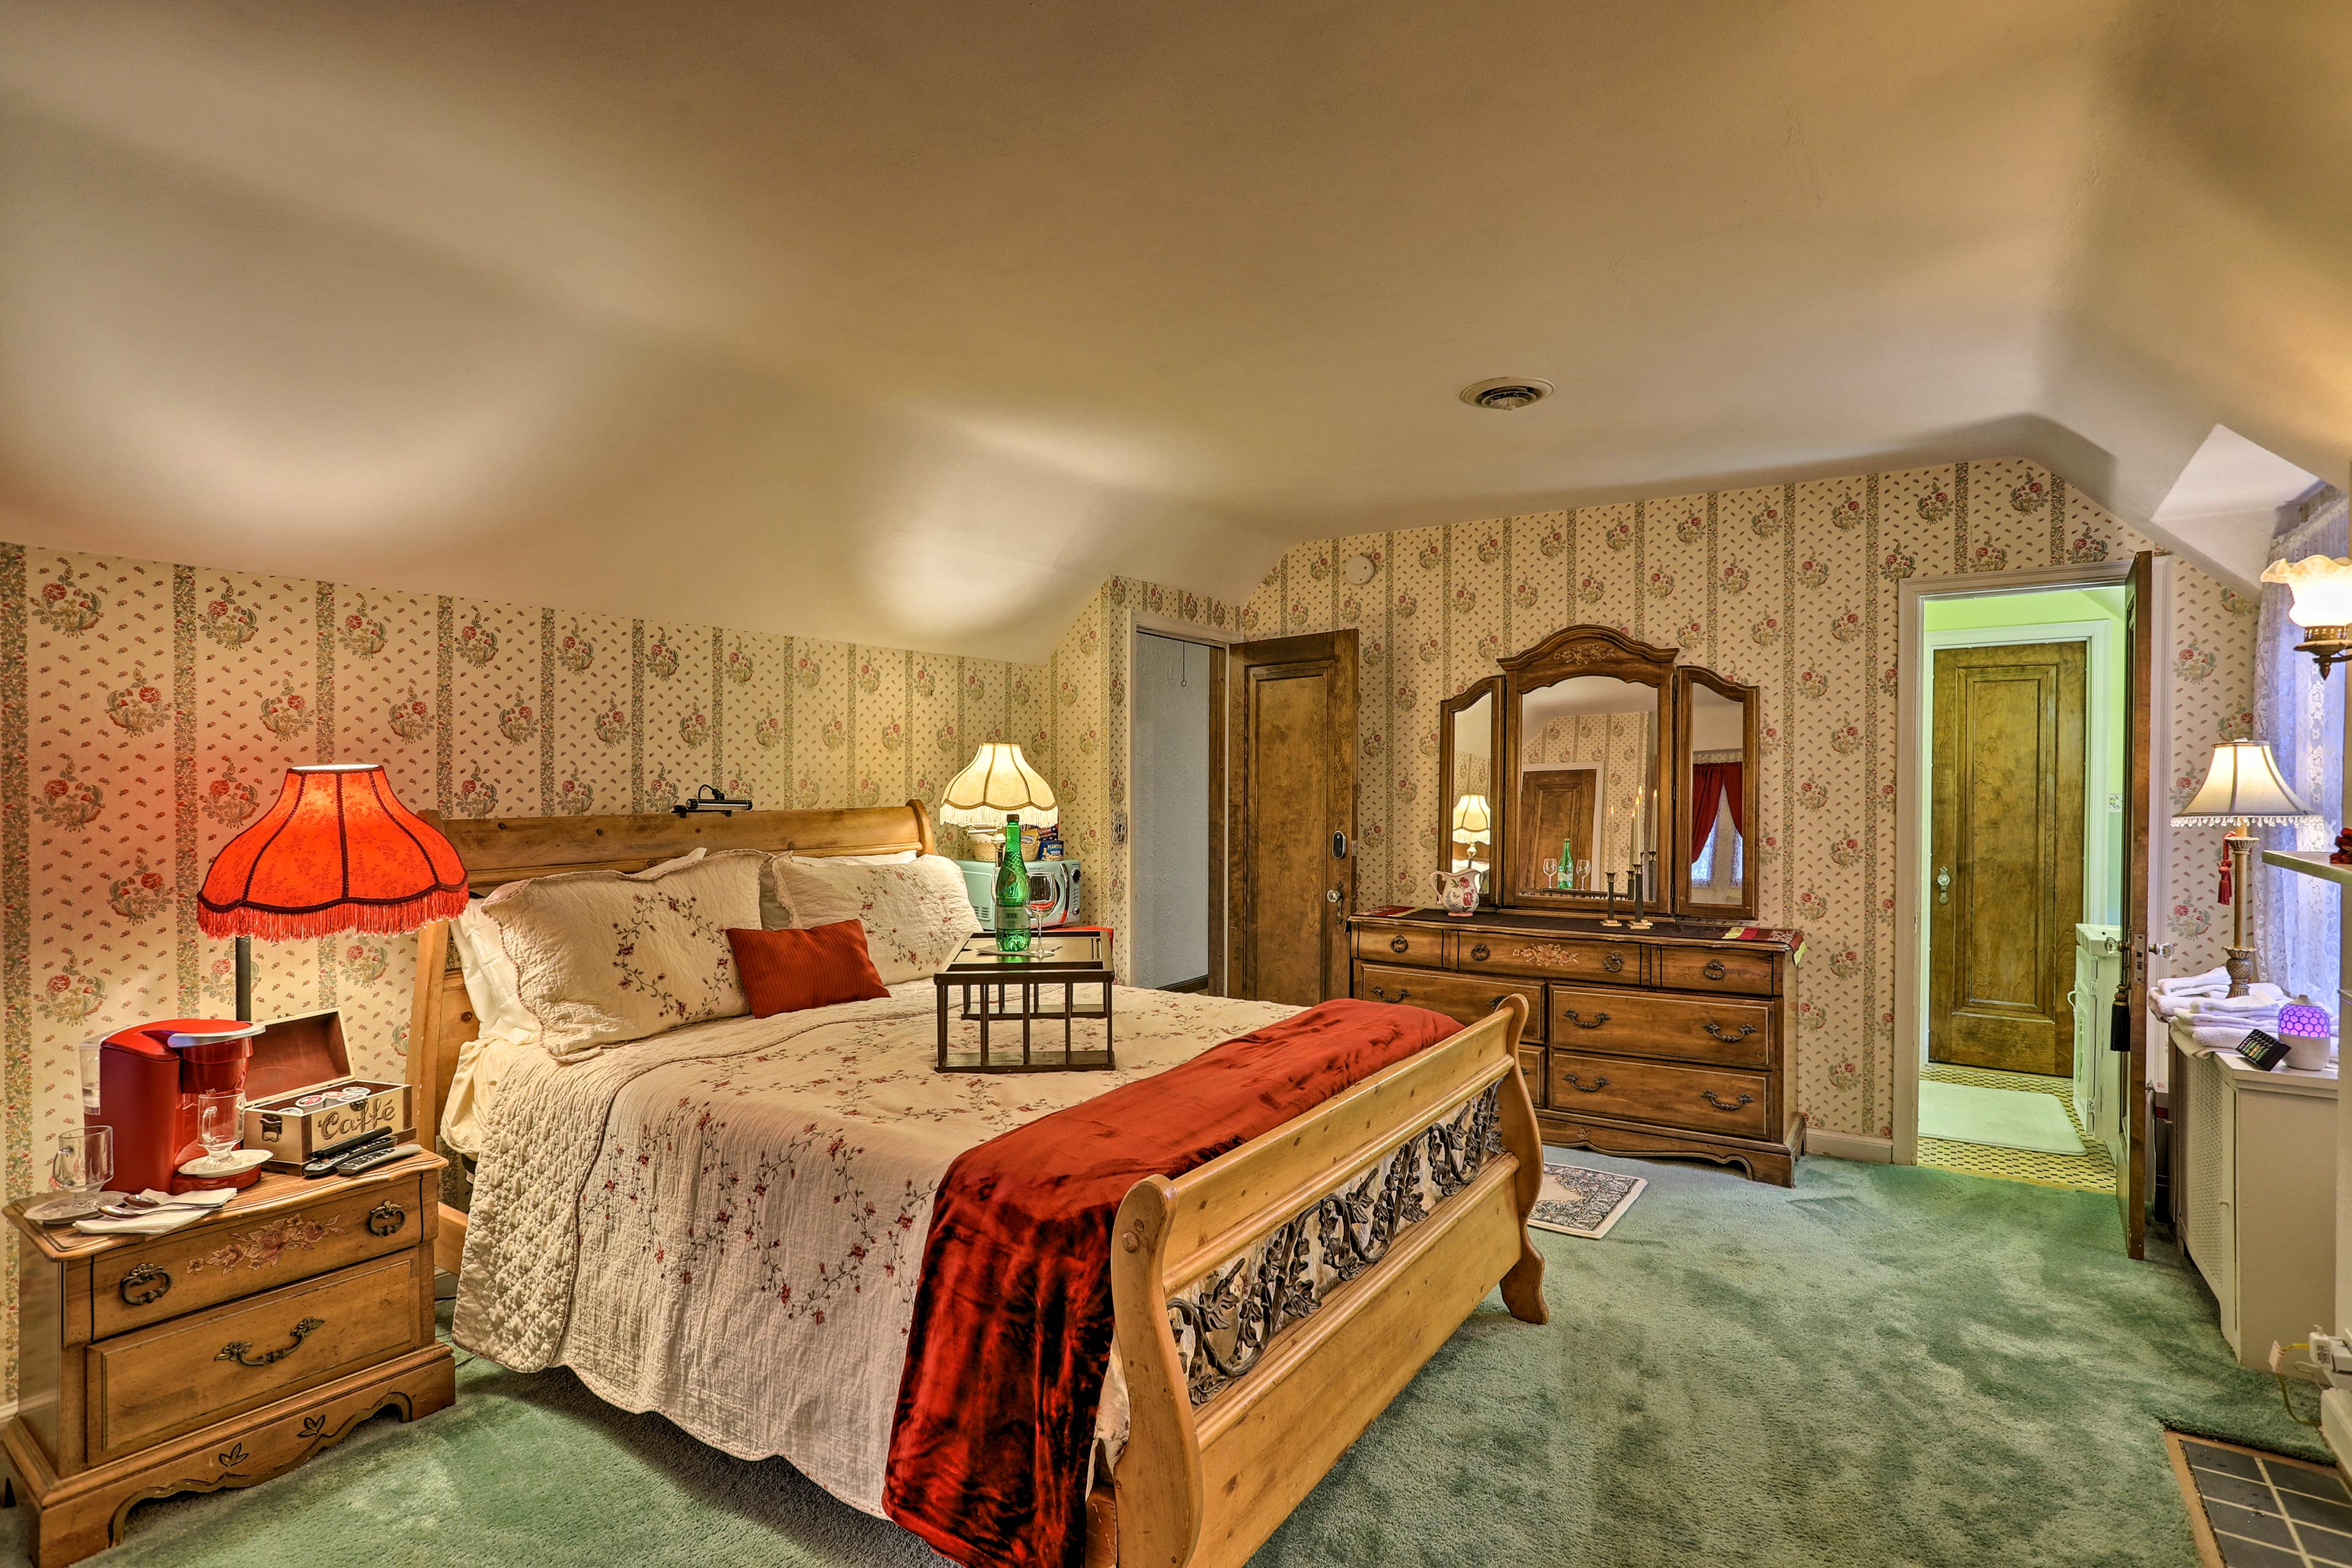 The master suite is fully stocked with luxury amenities.